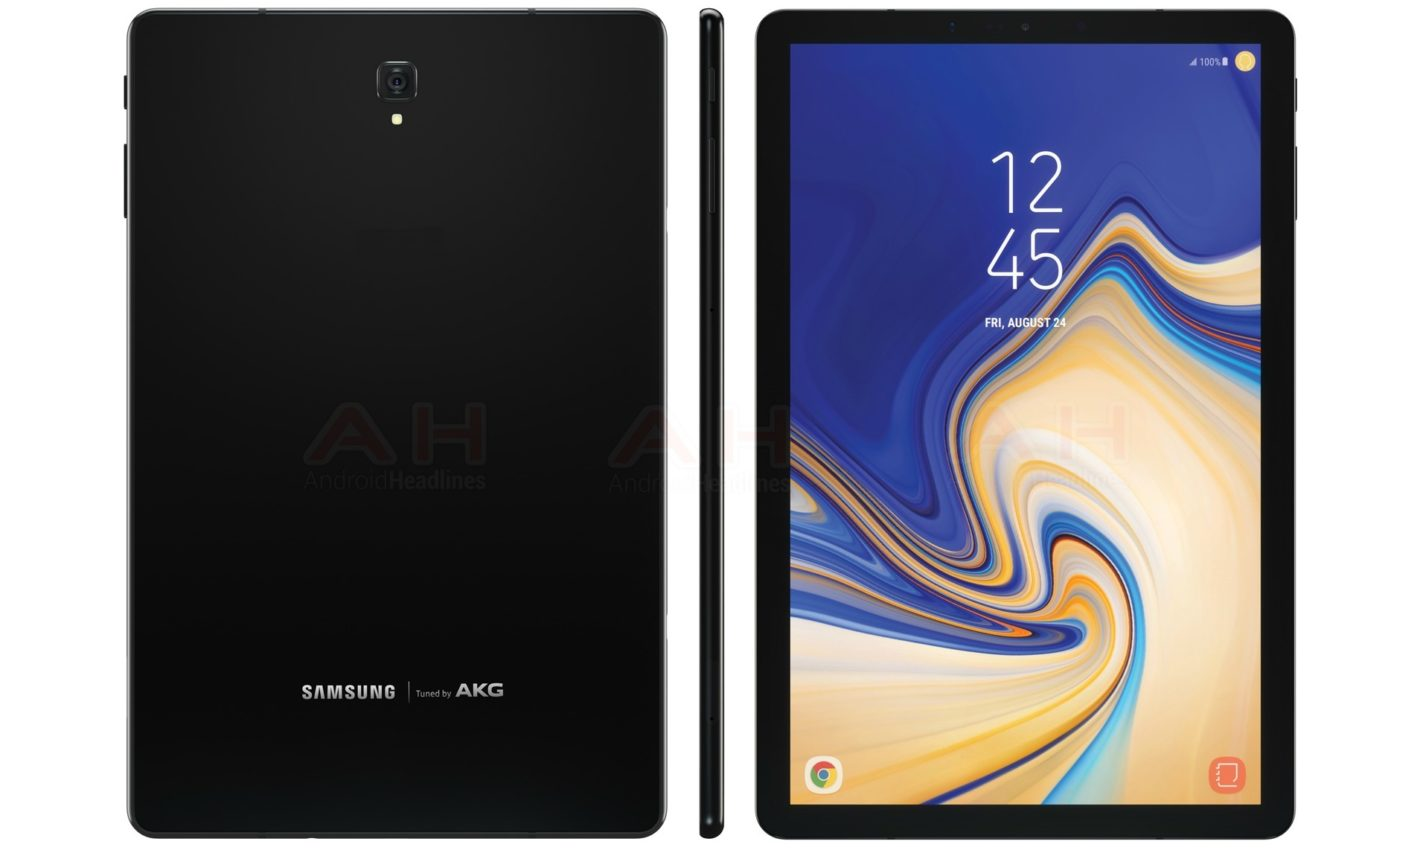 US Galaxy Tab S4 Wi-Fi model now receiving Android 9 Pie update